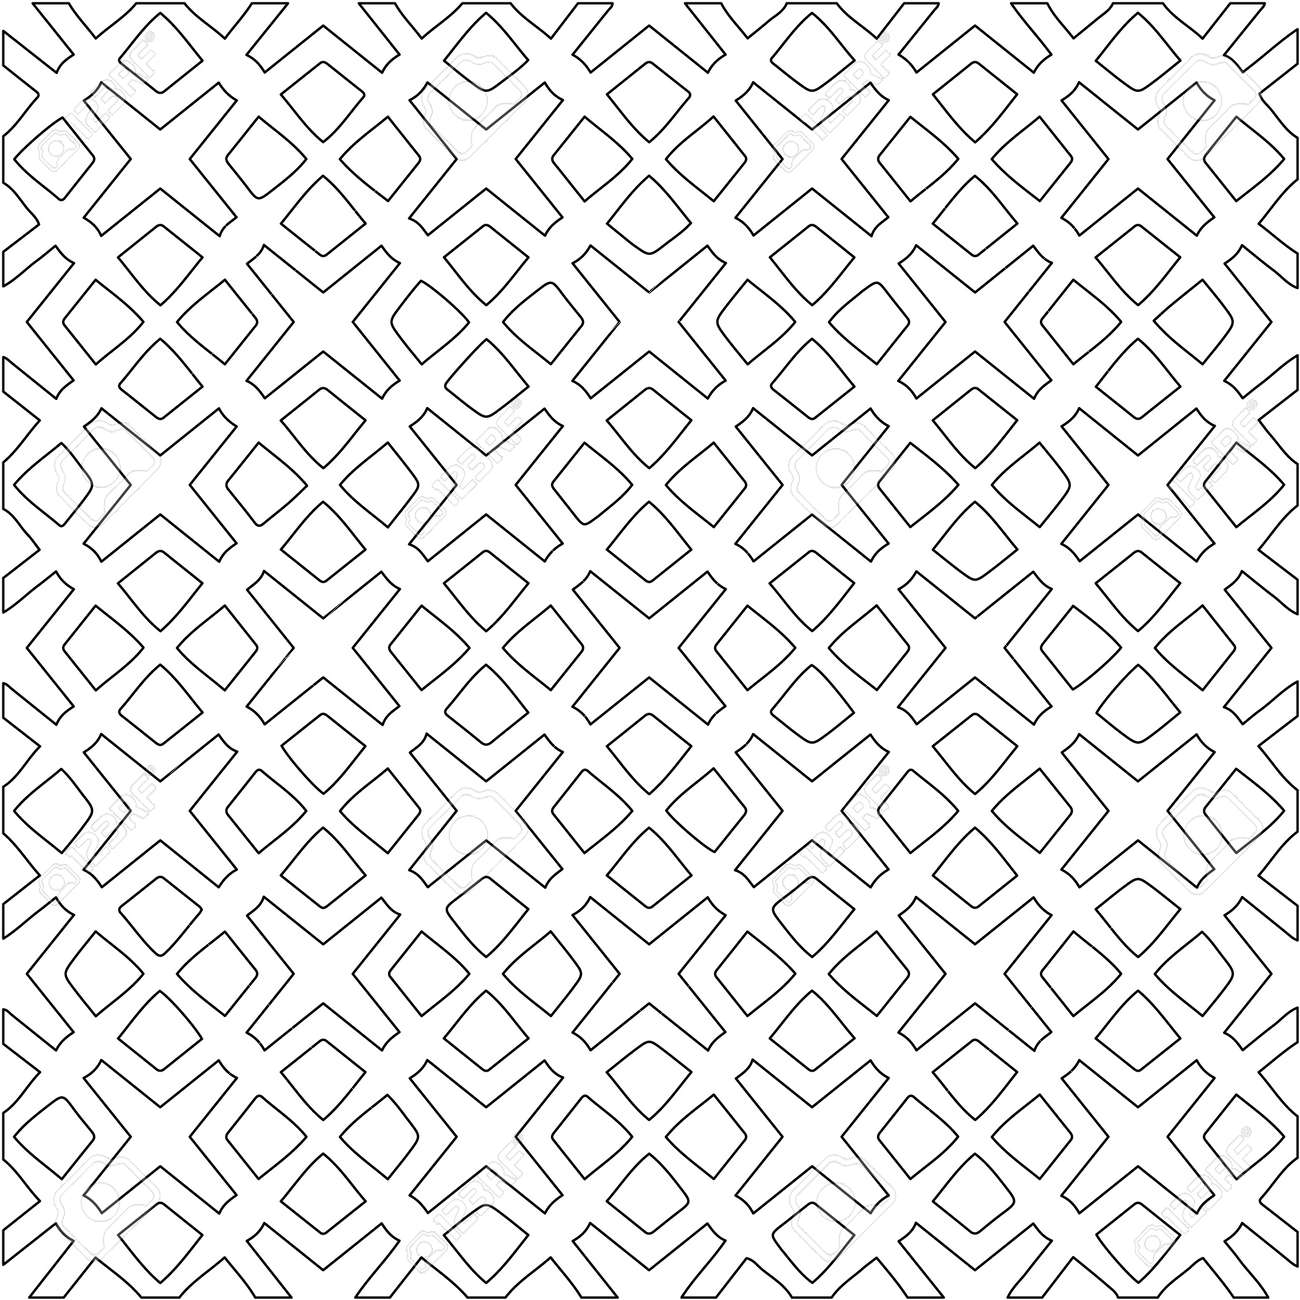 Geometric vector pattern with triangular elements. Seamless abstract ornament for wallpapers and backgrounds. Black and white colors. - 168441443